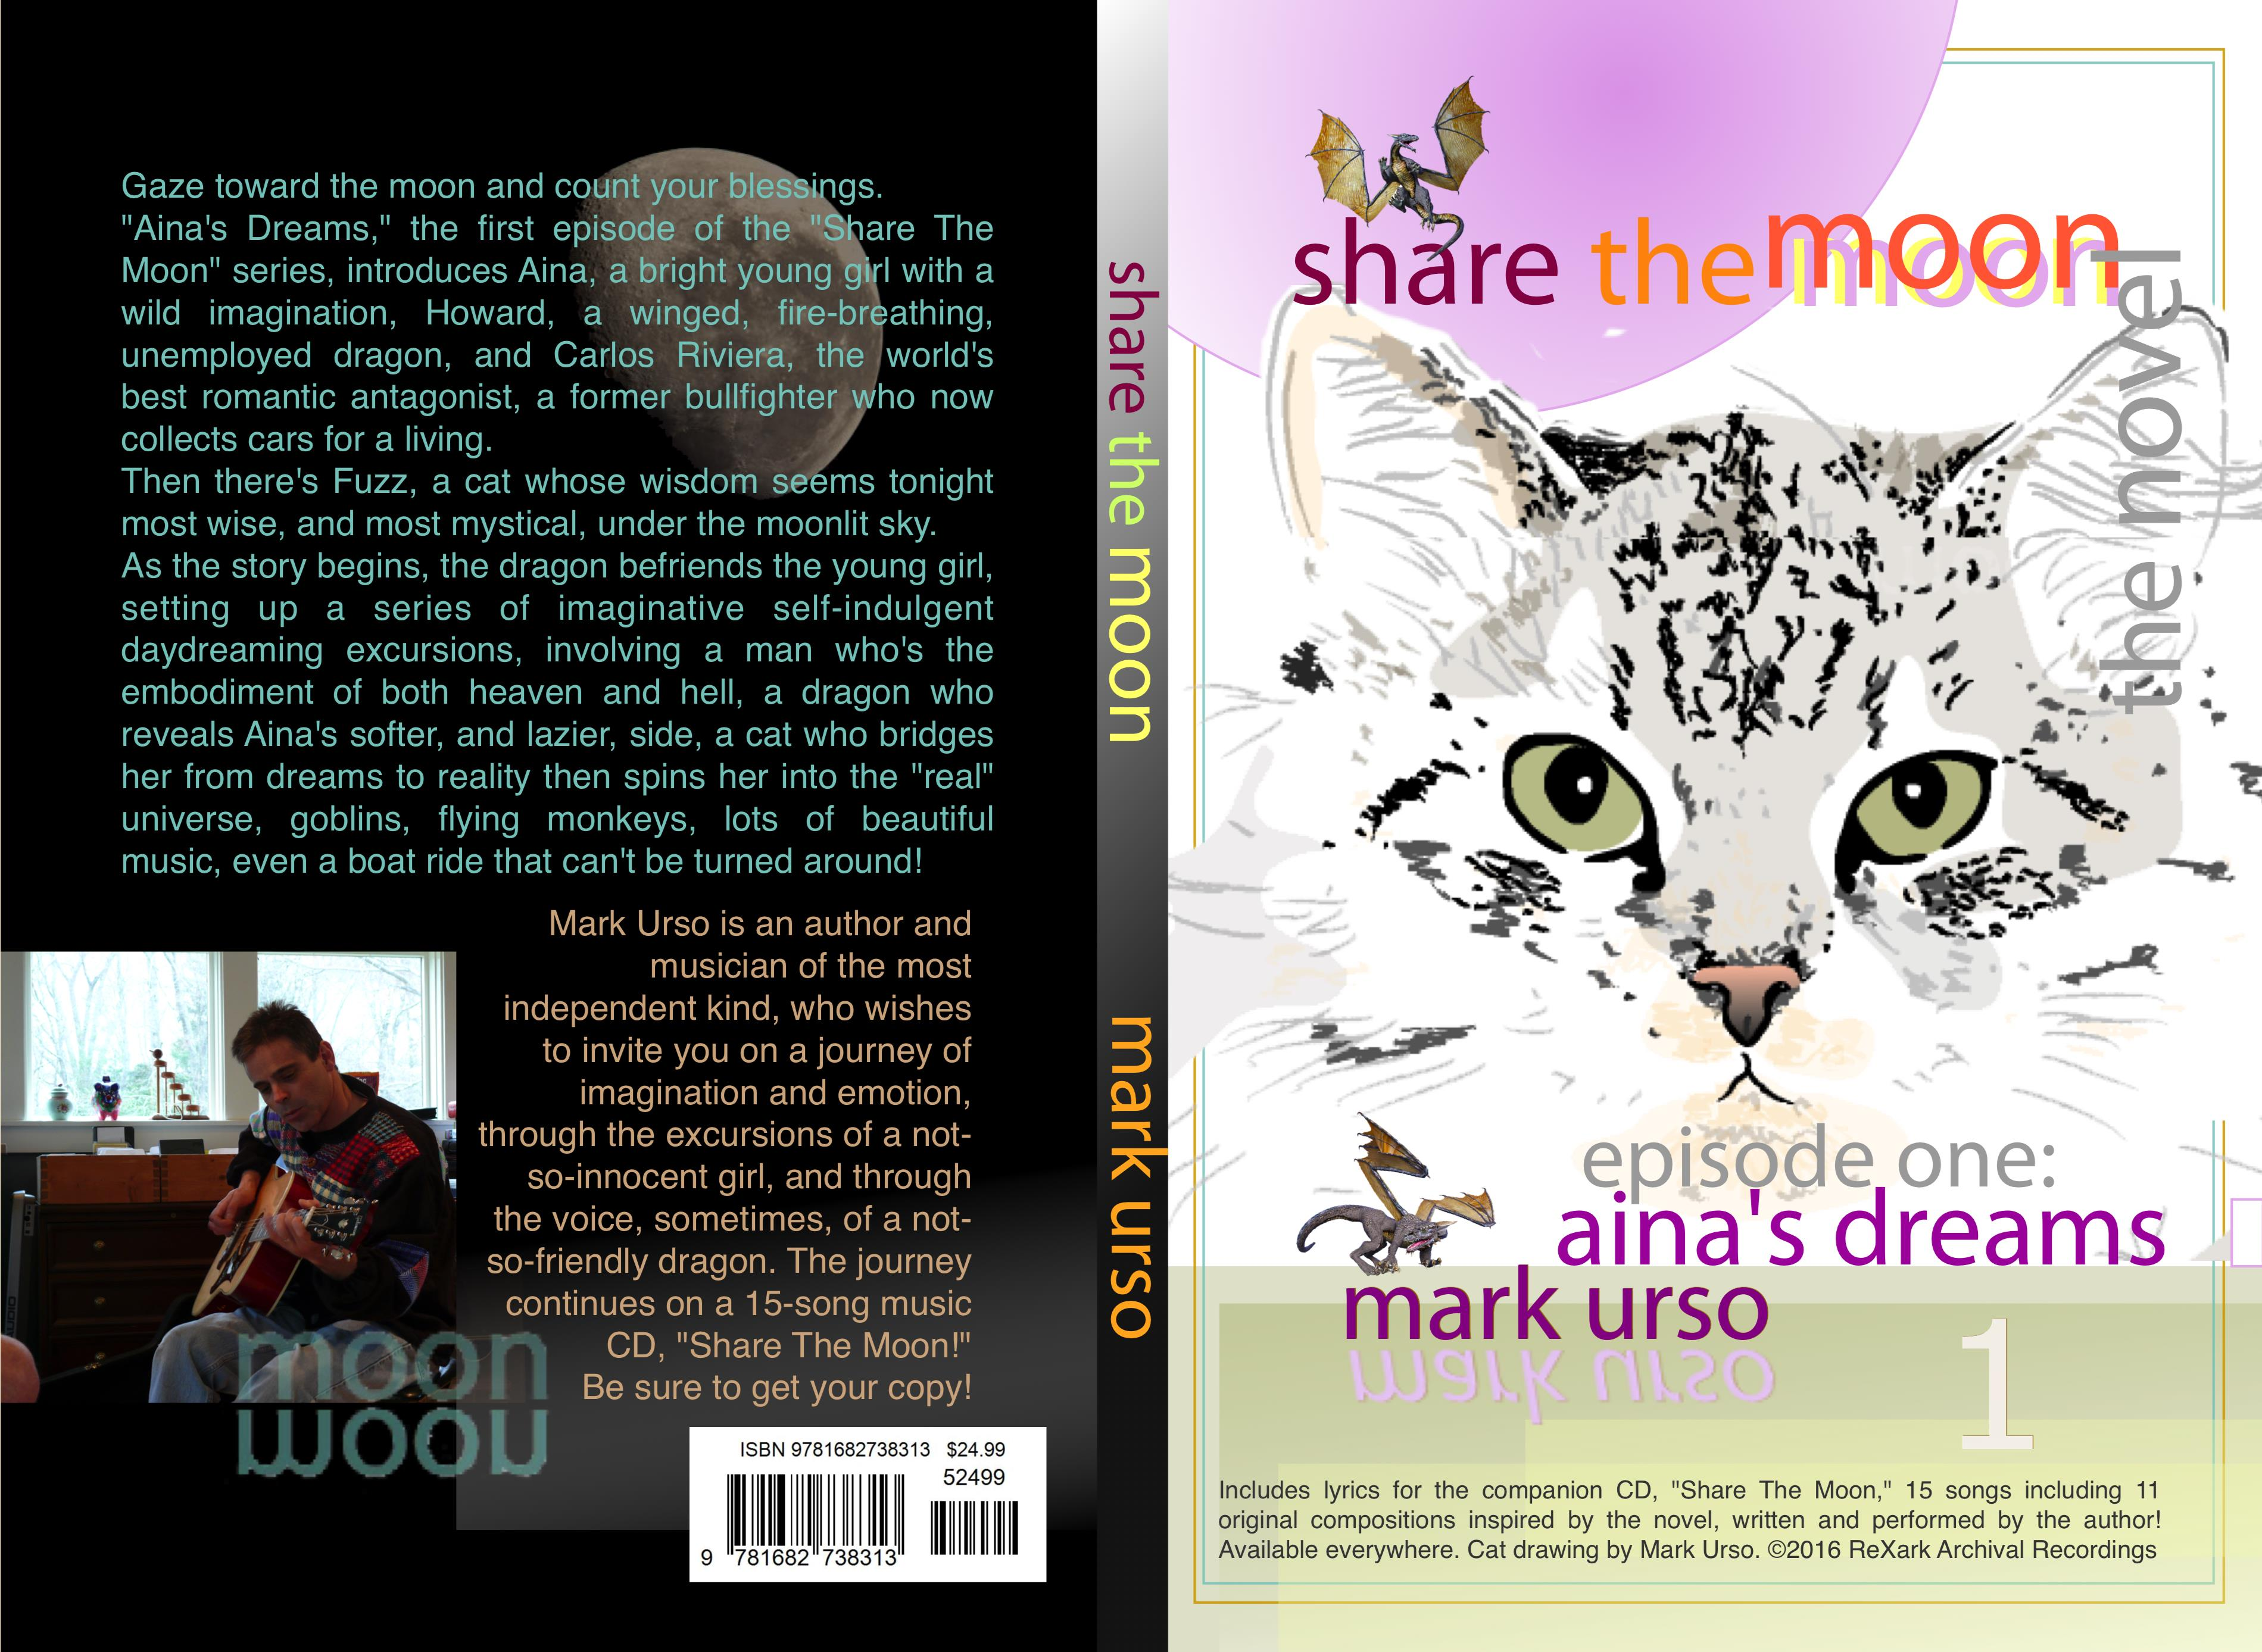 Share The Moon, Episode 1, Aina